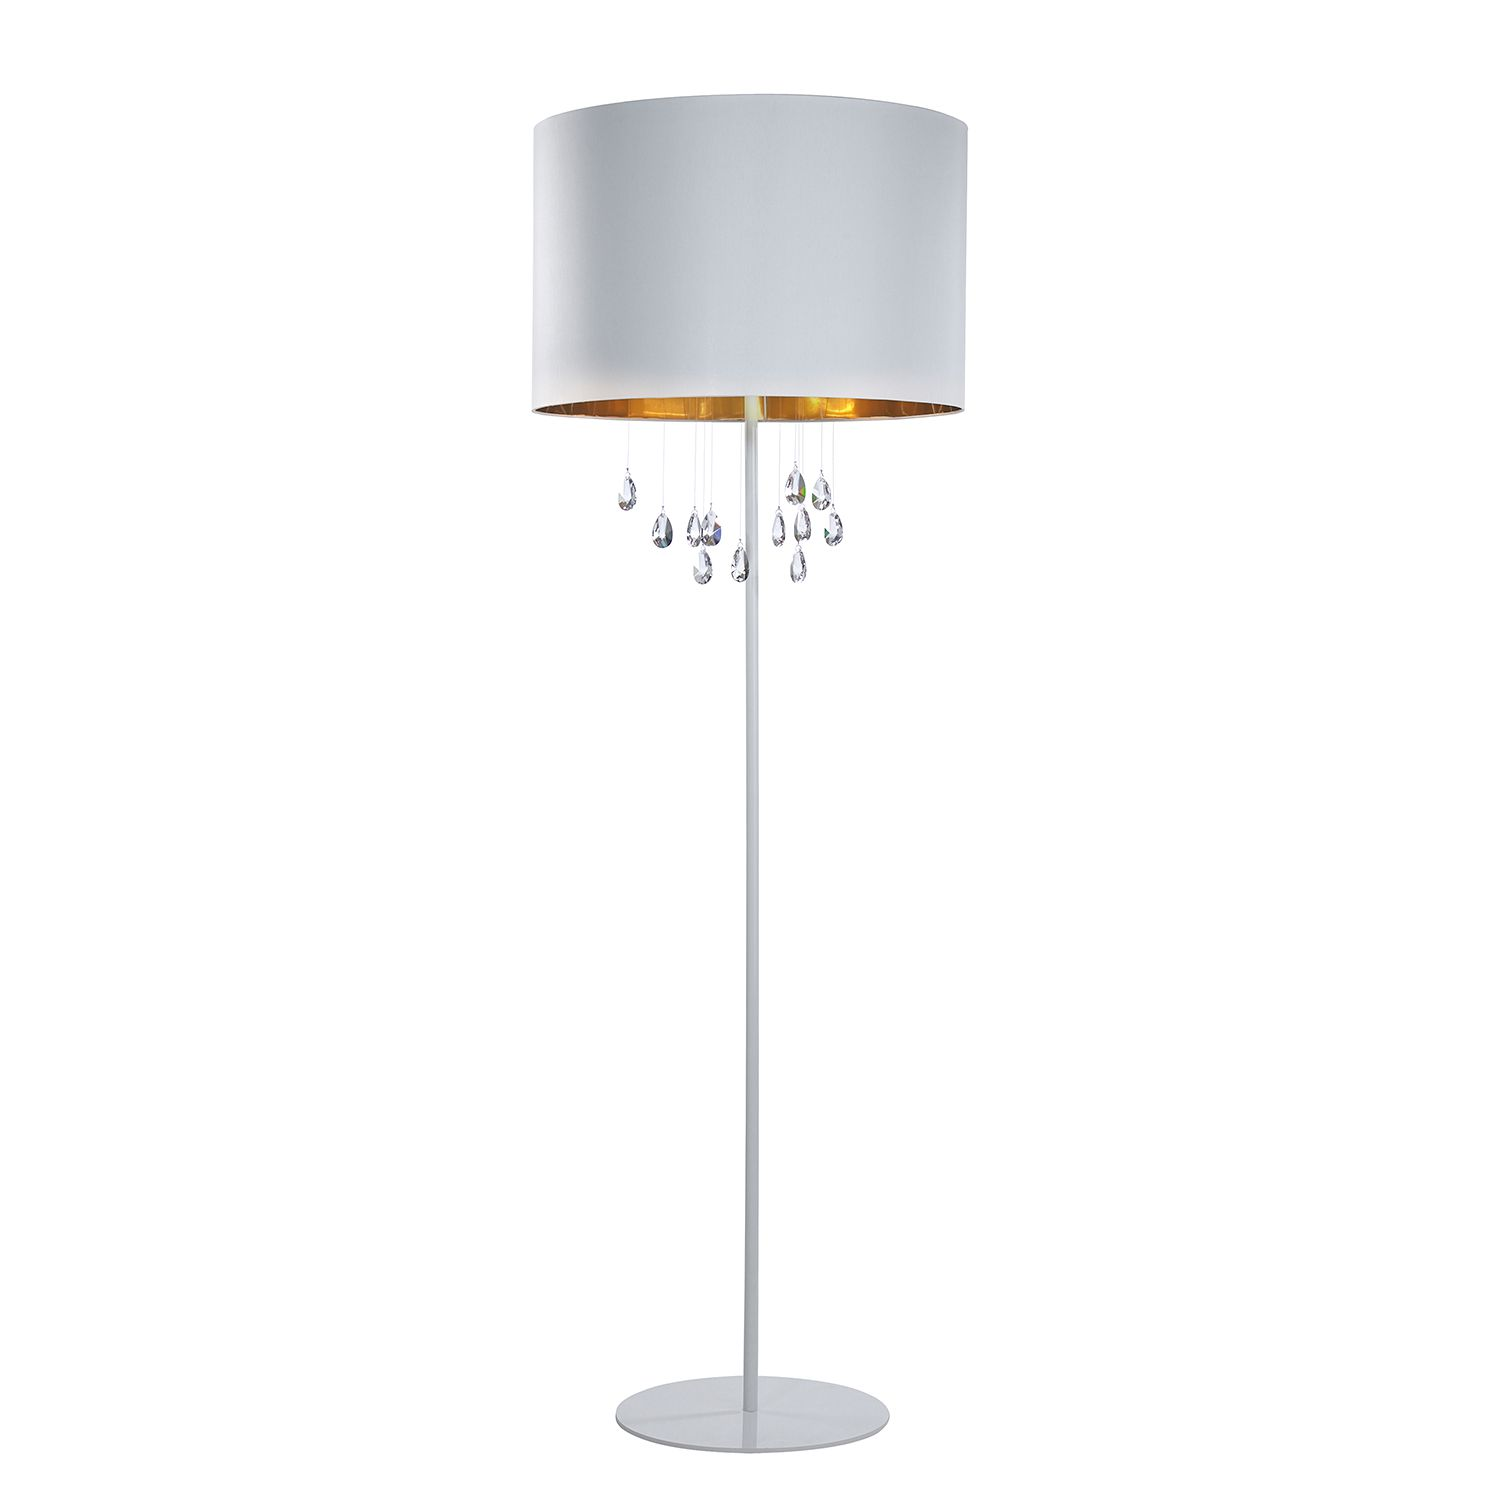 Stehleuchte Grace by Lampadina ● Metall/Glas ● Gold ● 4-flammig- Lampadina